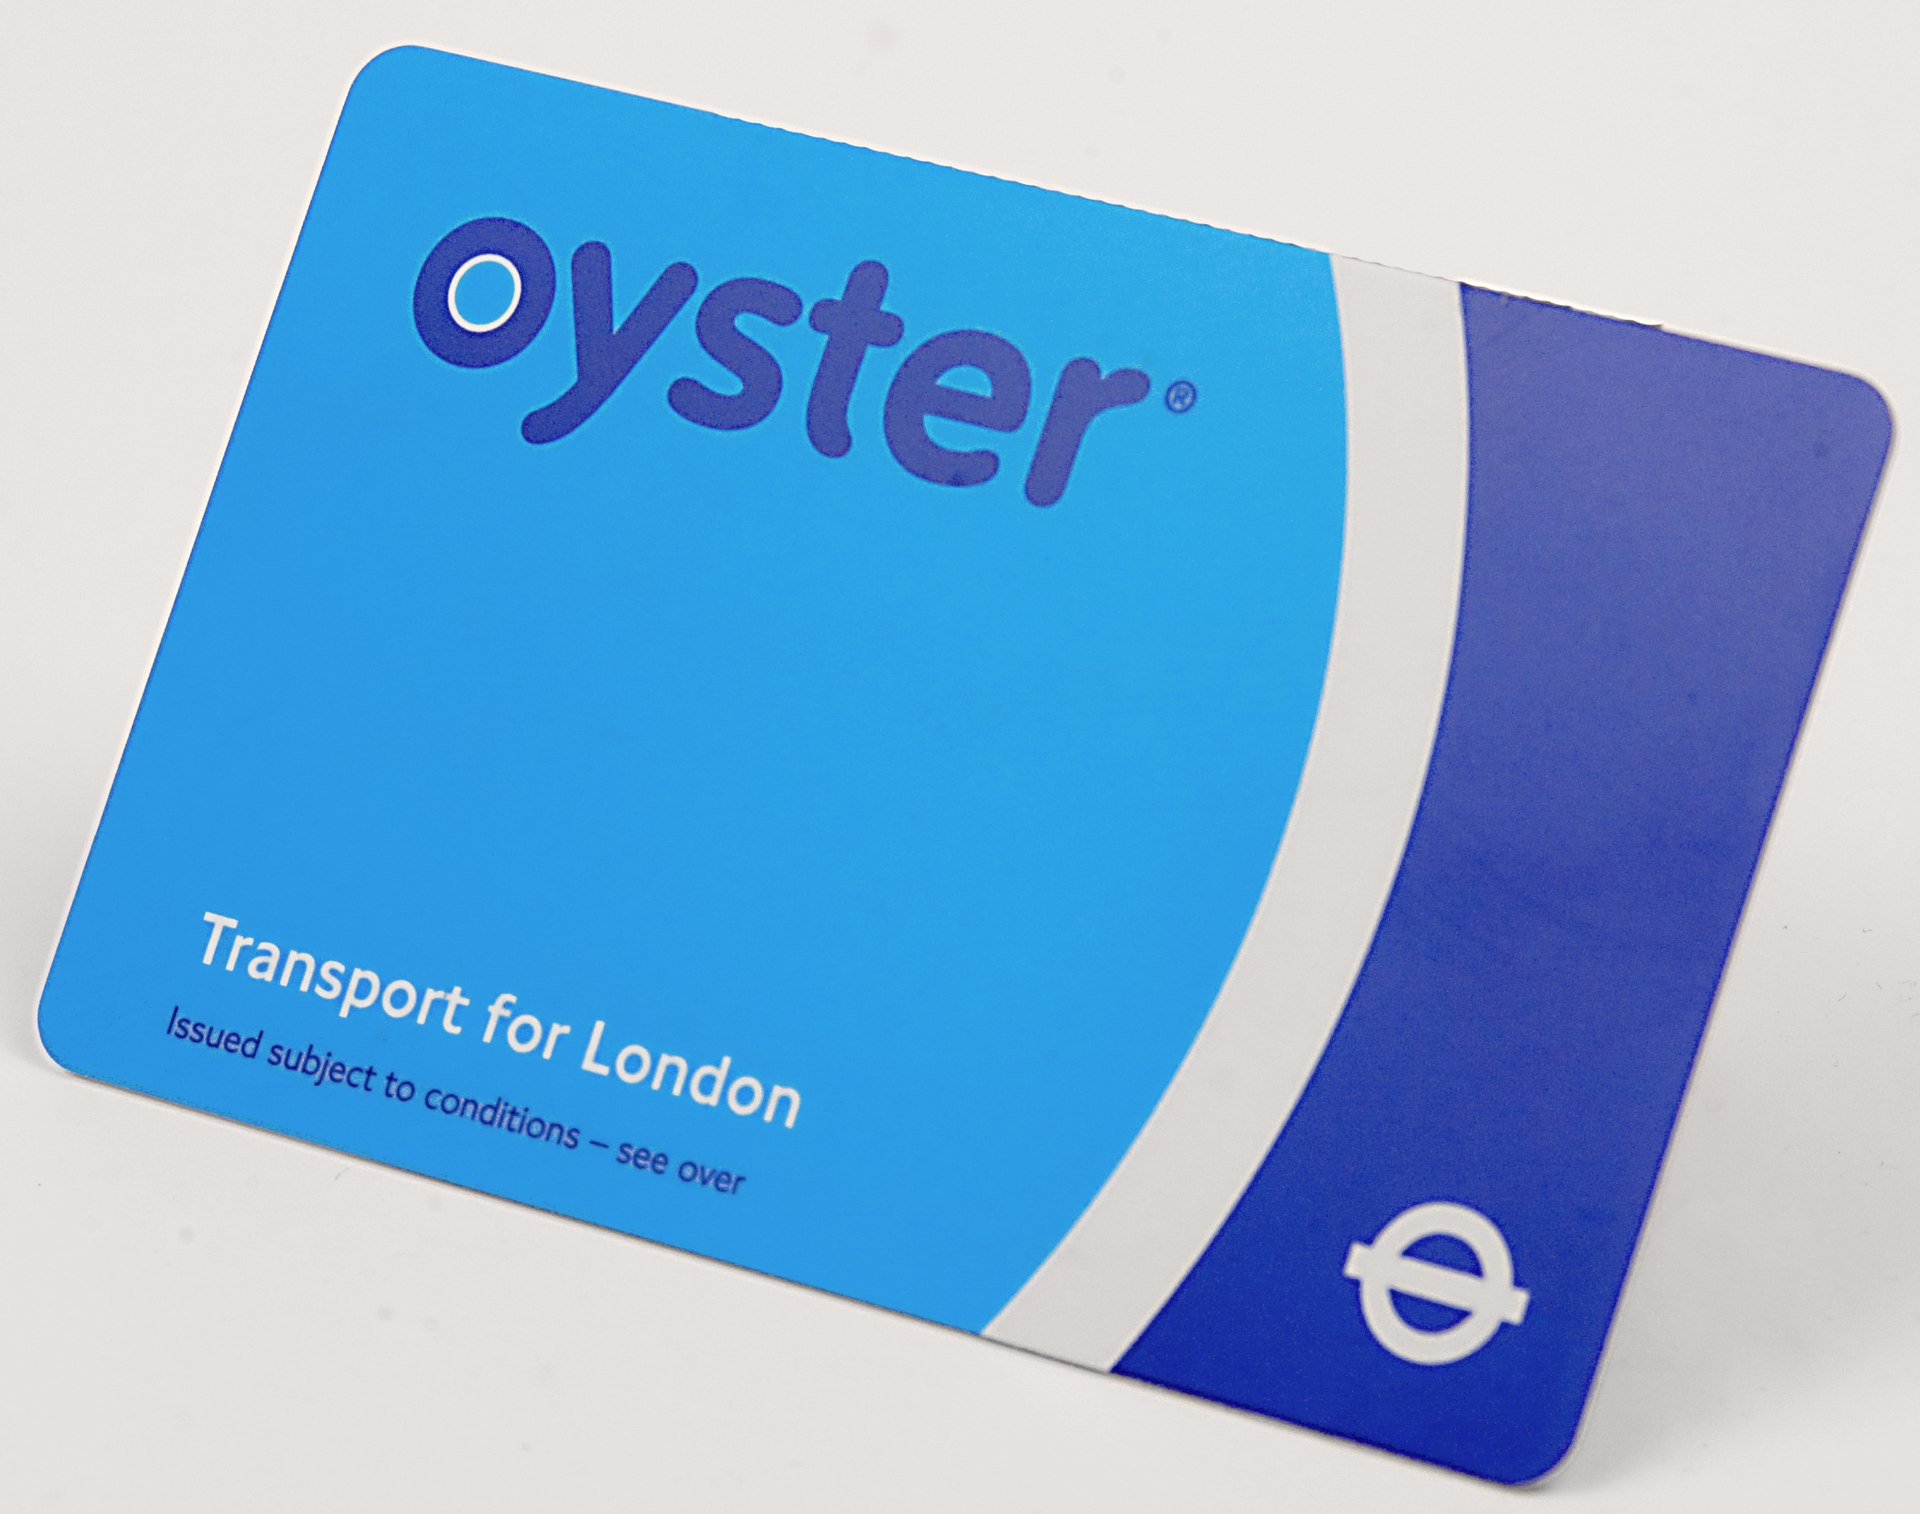 Oyster card - Wikipedia